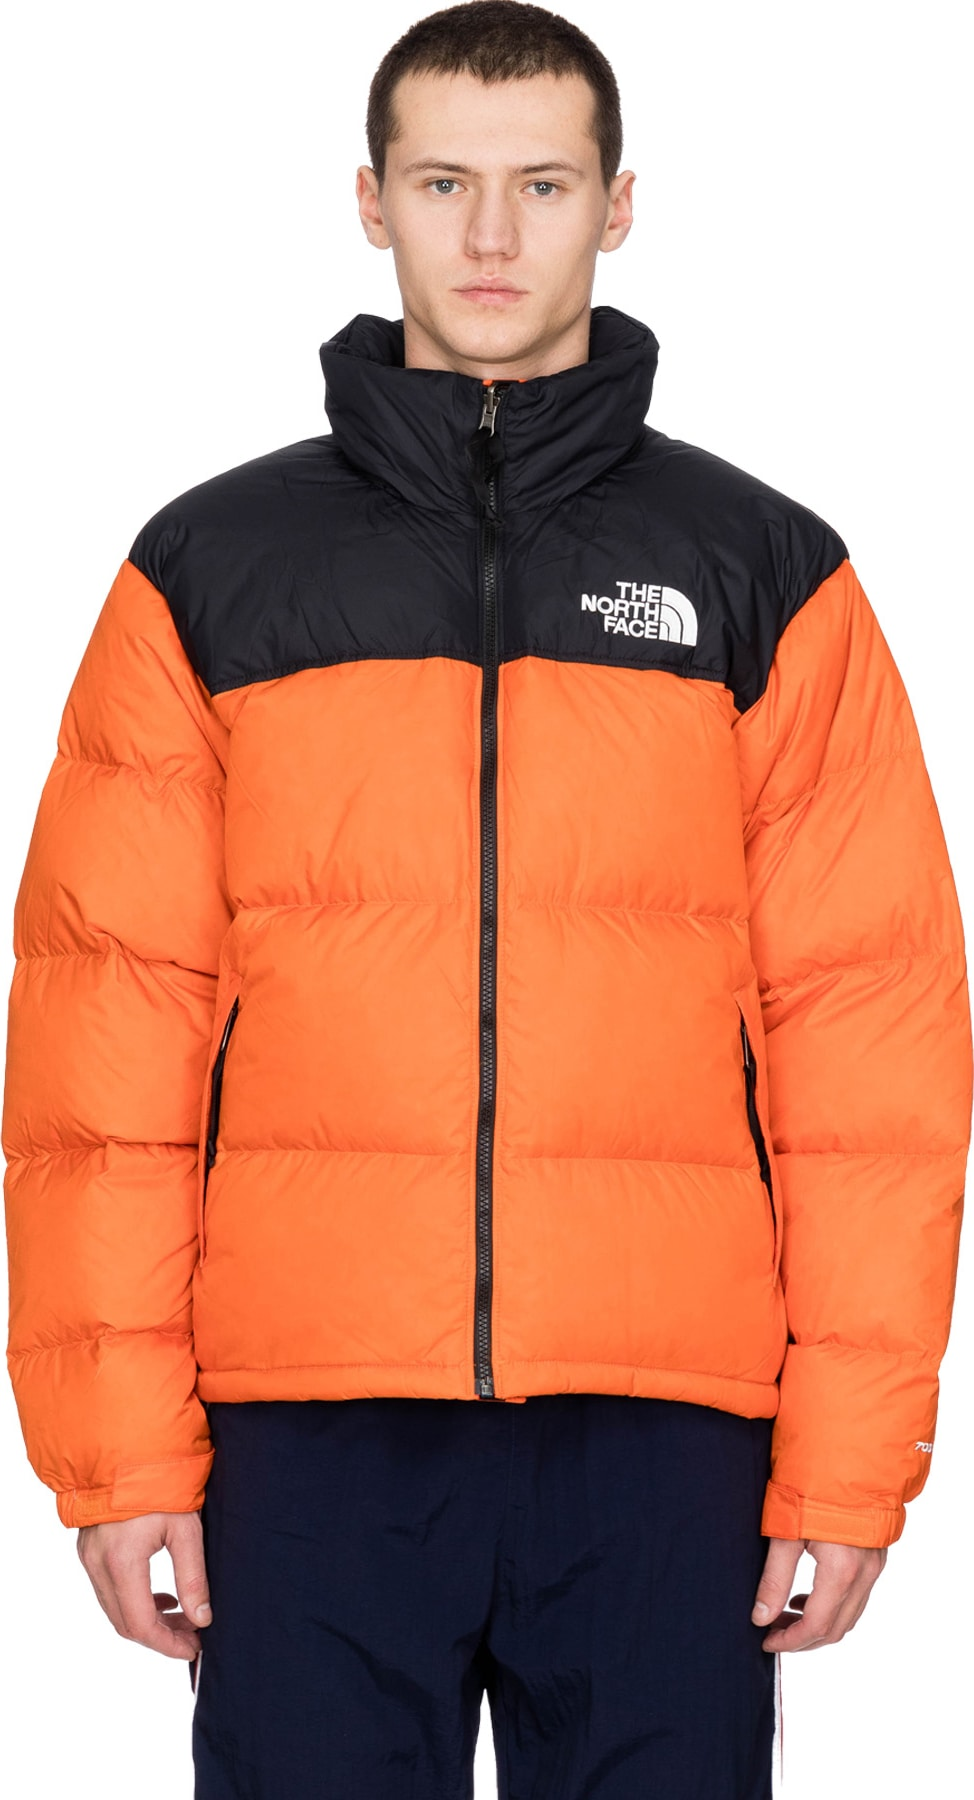 the North Face  1996 Retro Nuptse Jacket - Persian Orange  b8b8d3433